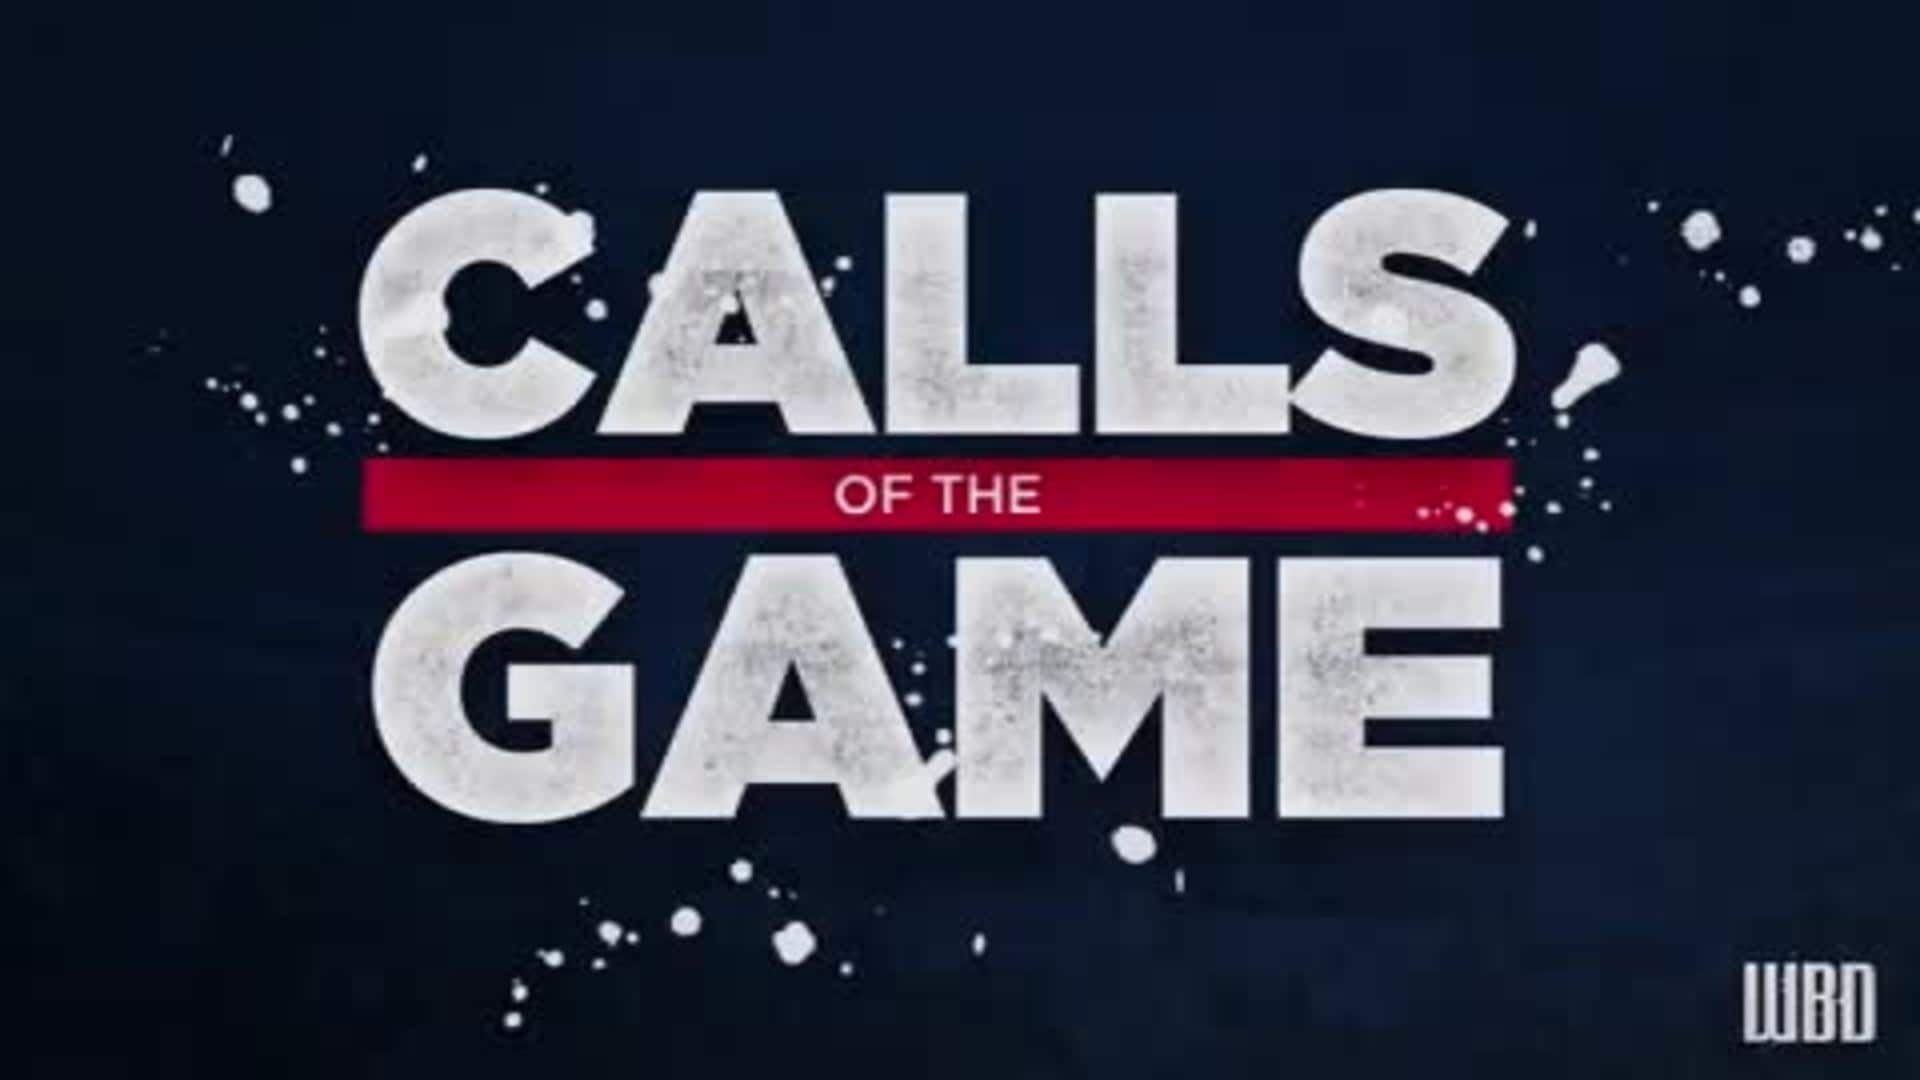 Calls of the Game: New Orleans Pelicans vs Detroit Pistons - Game 41 - Jan. 13, 2020